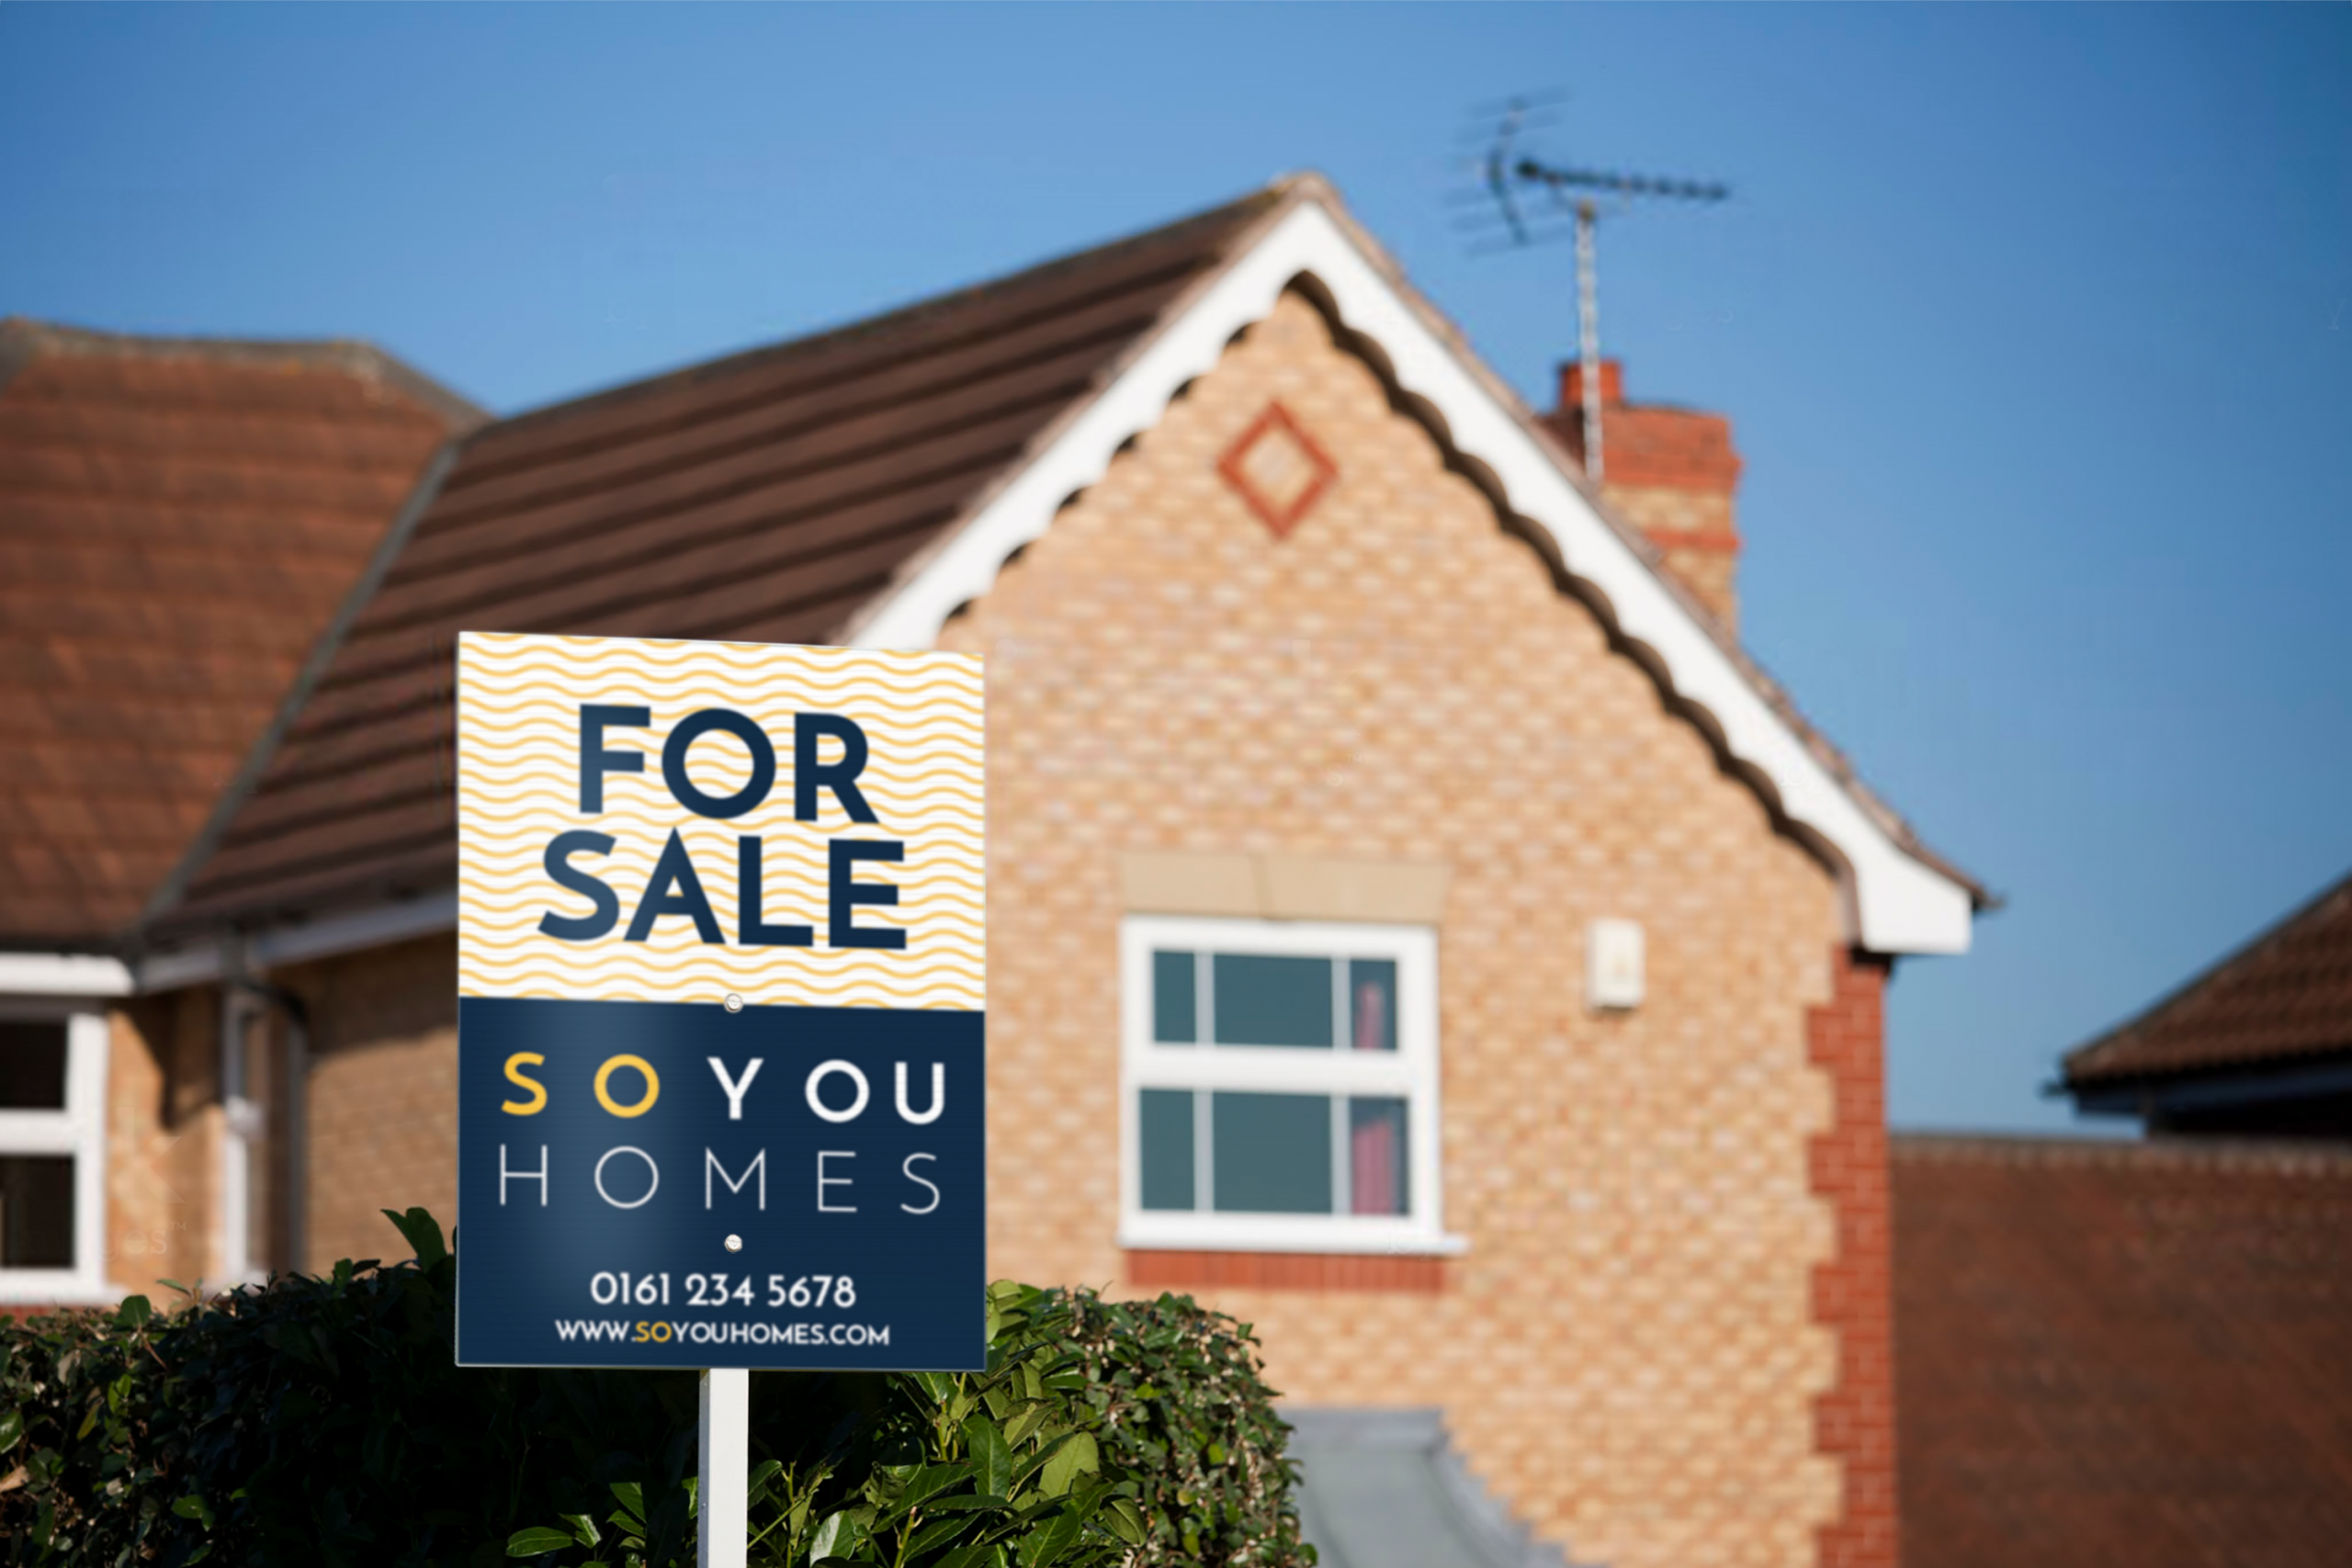 So You Homes For Sale Sign with patterned background, infront of house